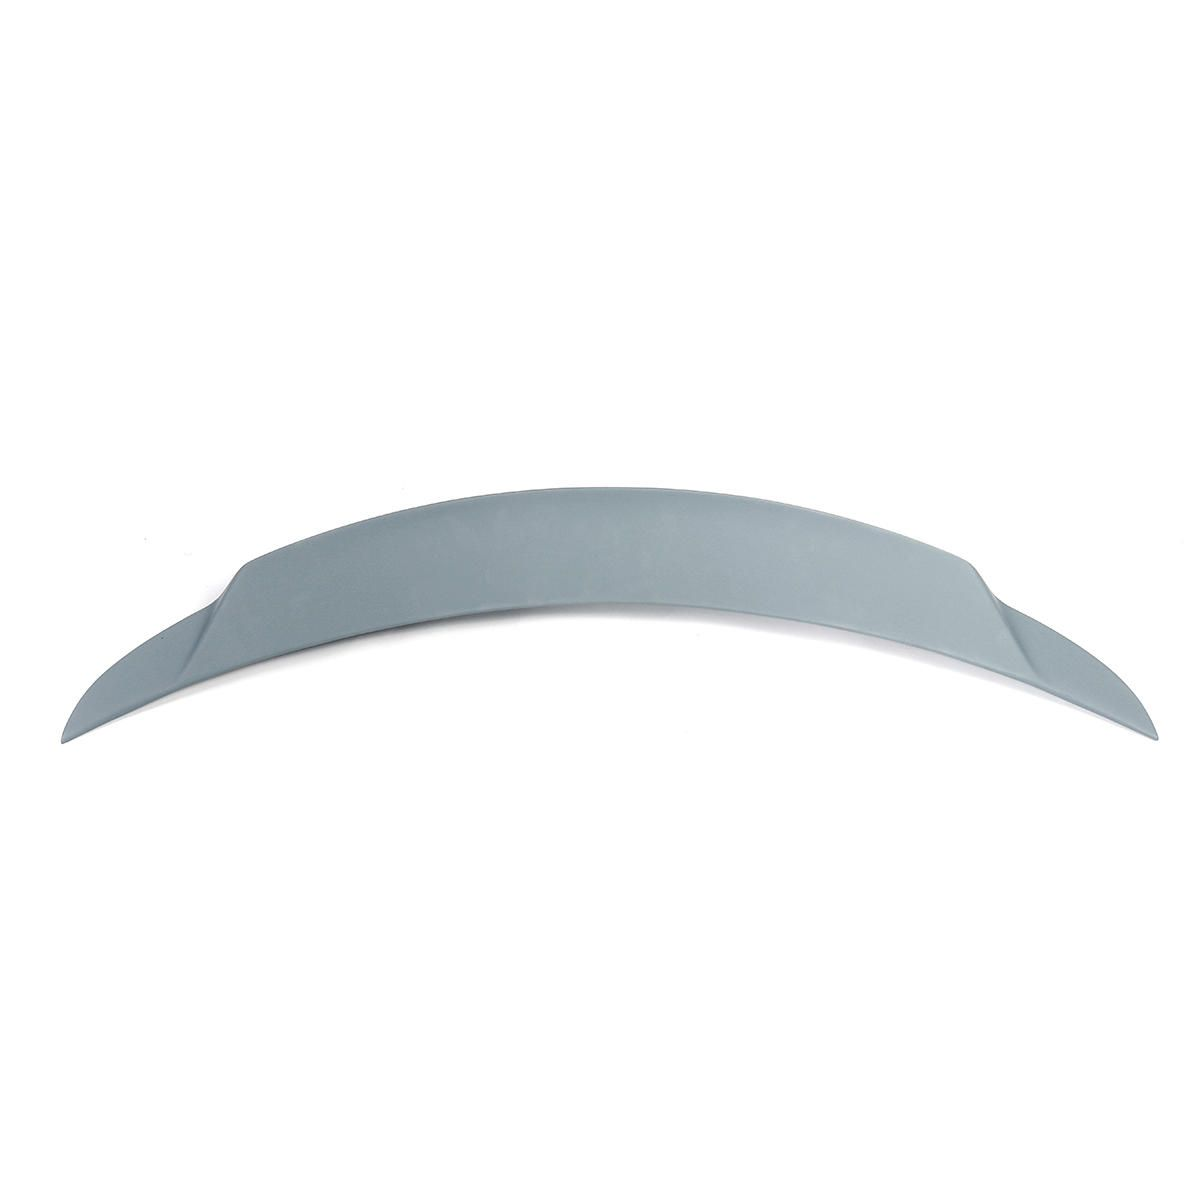 PZD US$88.06 Car Rear Trunk Spoiler Wing High Kick For Infiniti G37 Q60 2 DOOR Coupe 2007-15